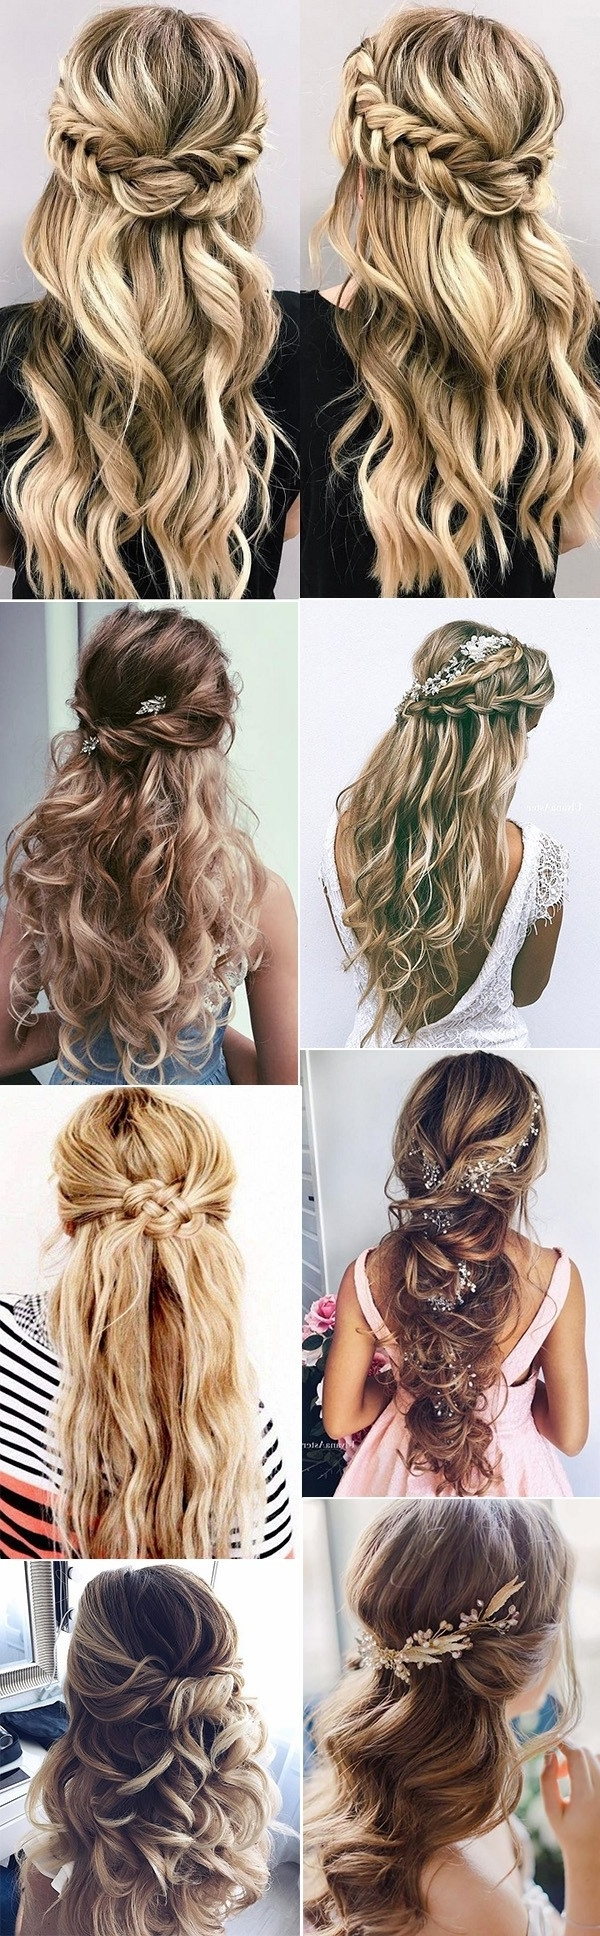 15 Chic Half Up Half Down Wedding Hairstyles For Long Hair Regarding Fashionable Wedding Hairstyles For Long Brown Hair (View 2 of 15)